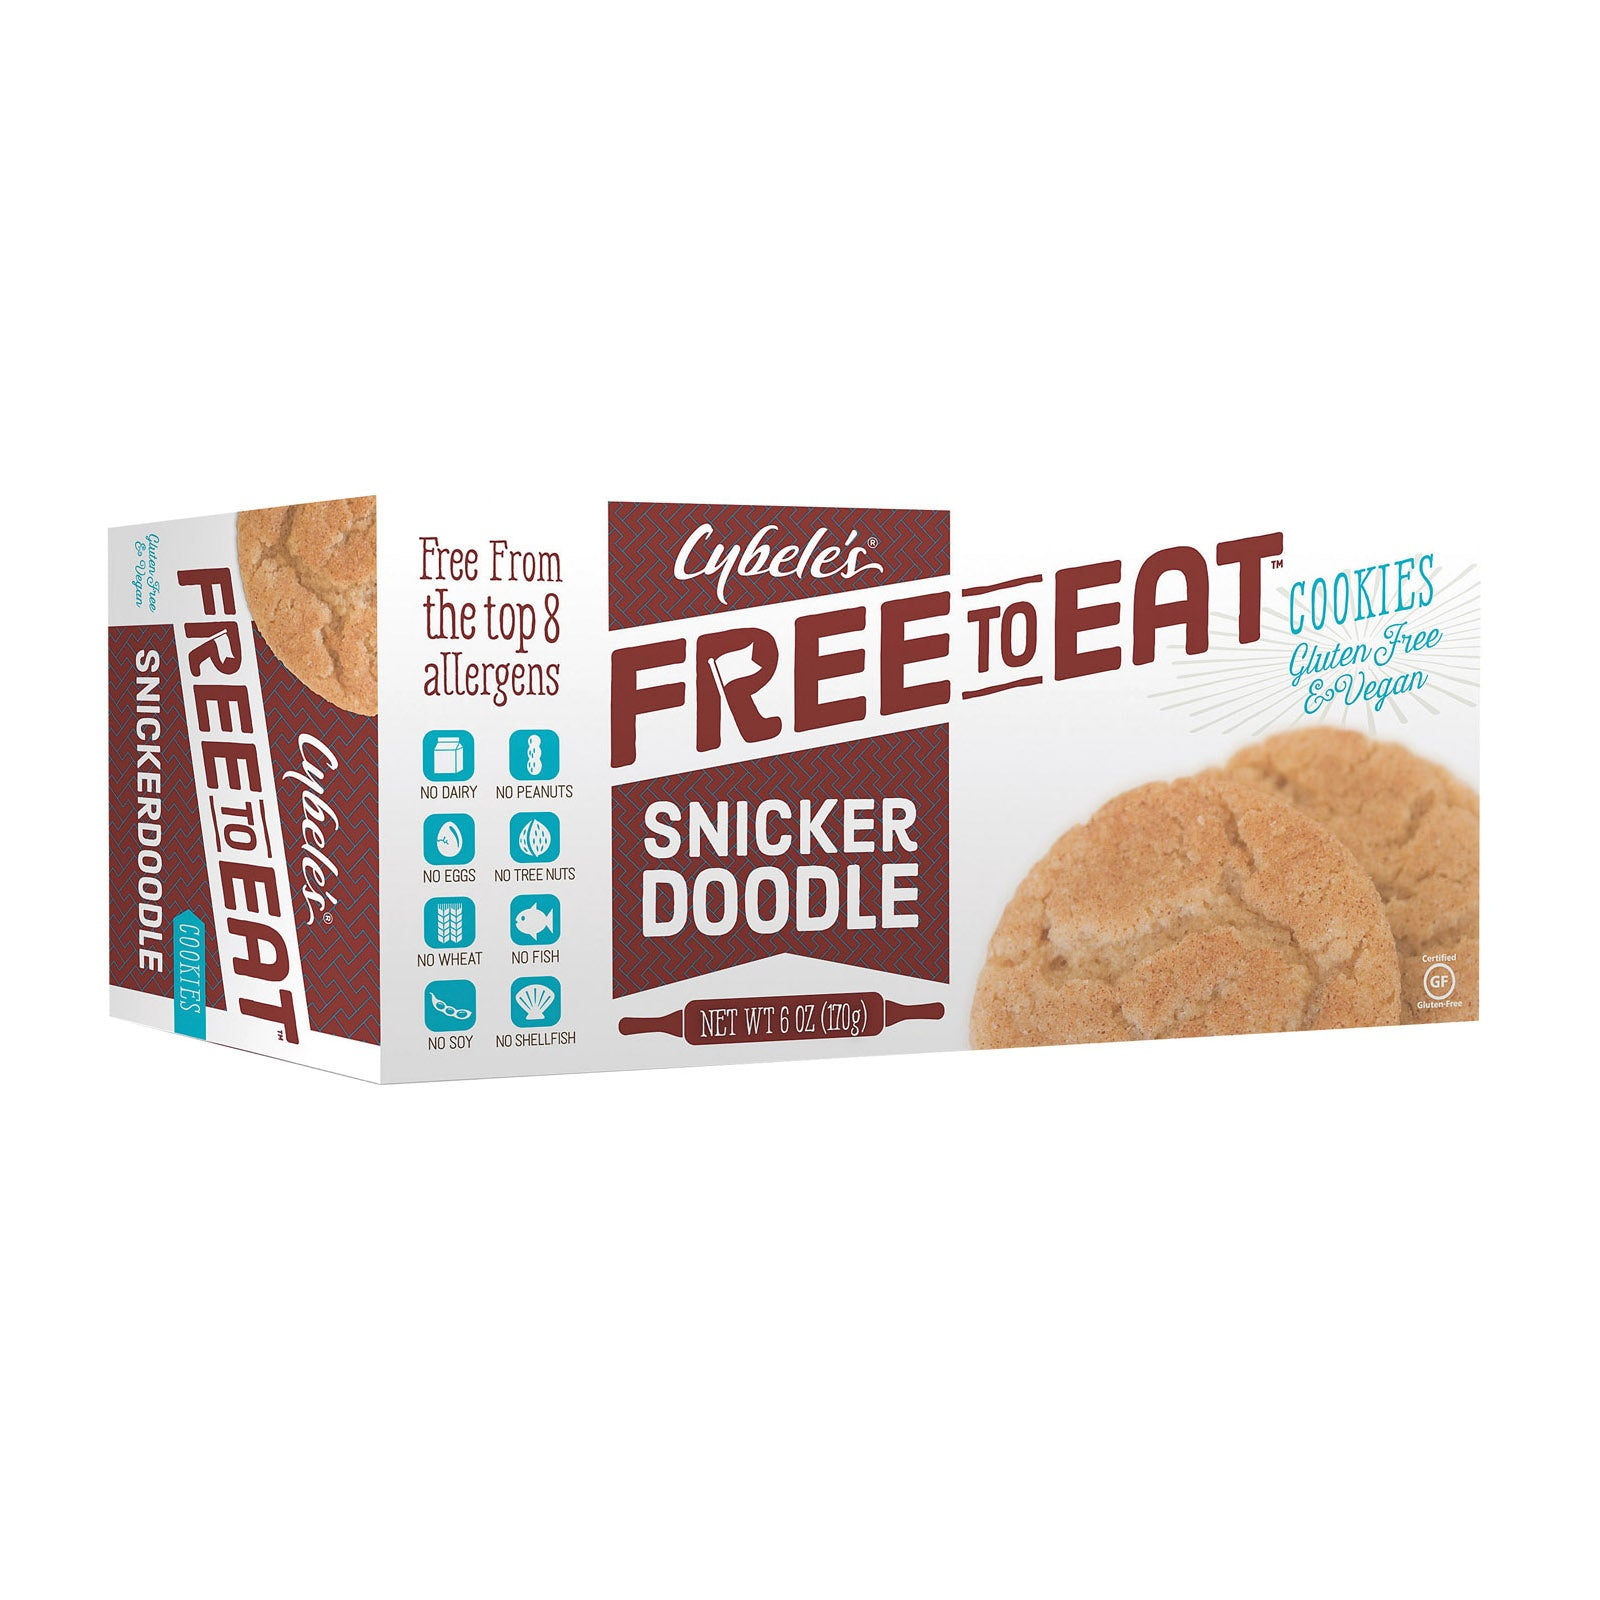 Cybele's Free to Eat Cookies - Snickerdoodle